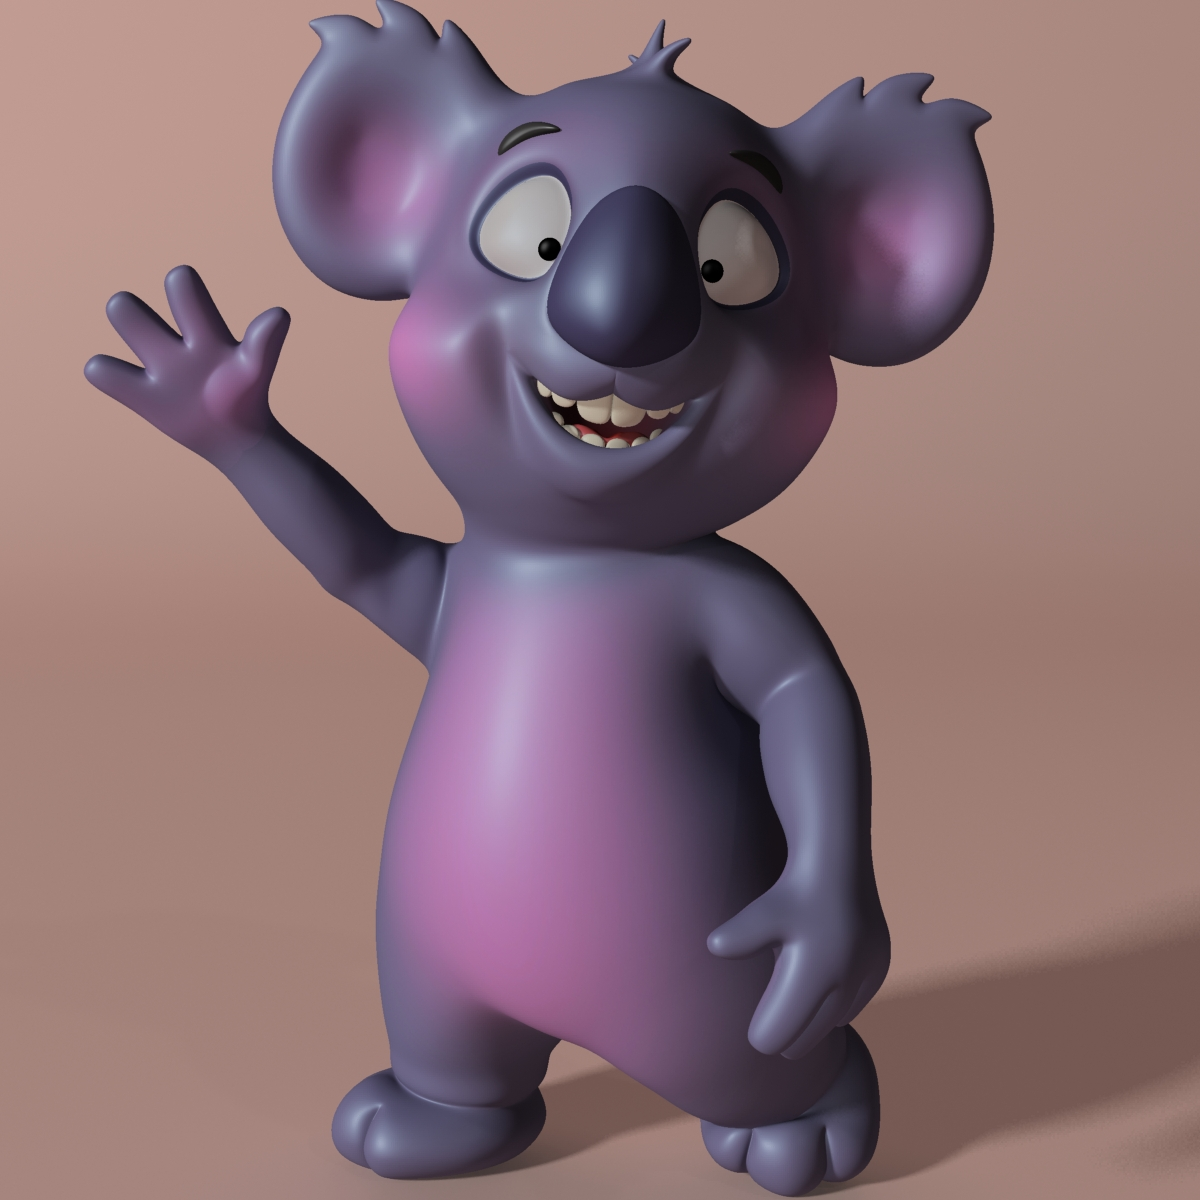 cartoon koala rigged at animated 3d modelo 3ds max fbx obj stl 263625